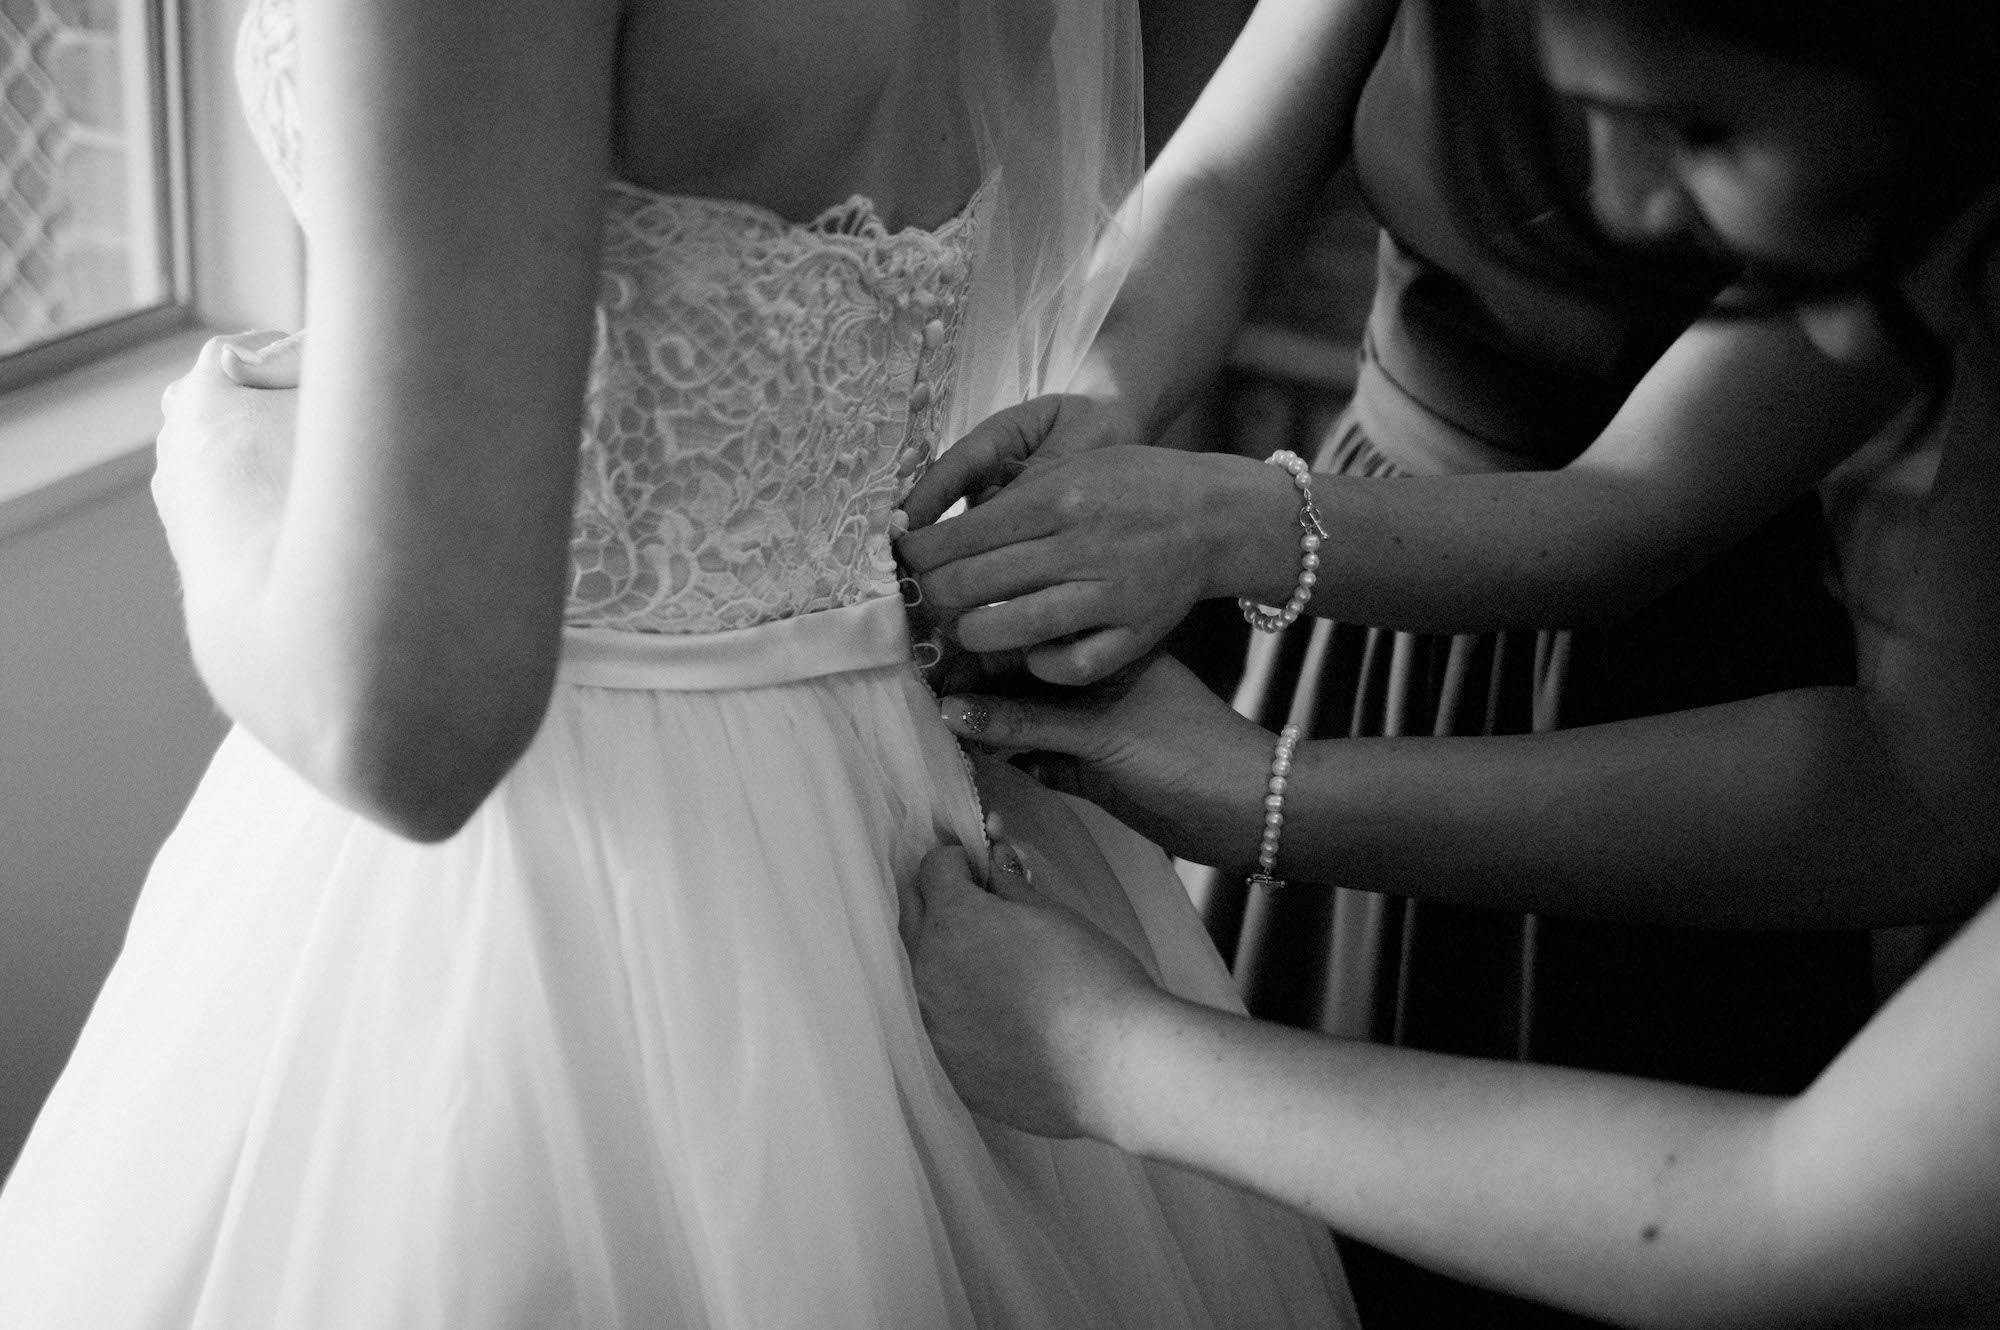 The bridesmaid's helping button up the bride's dress.